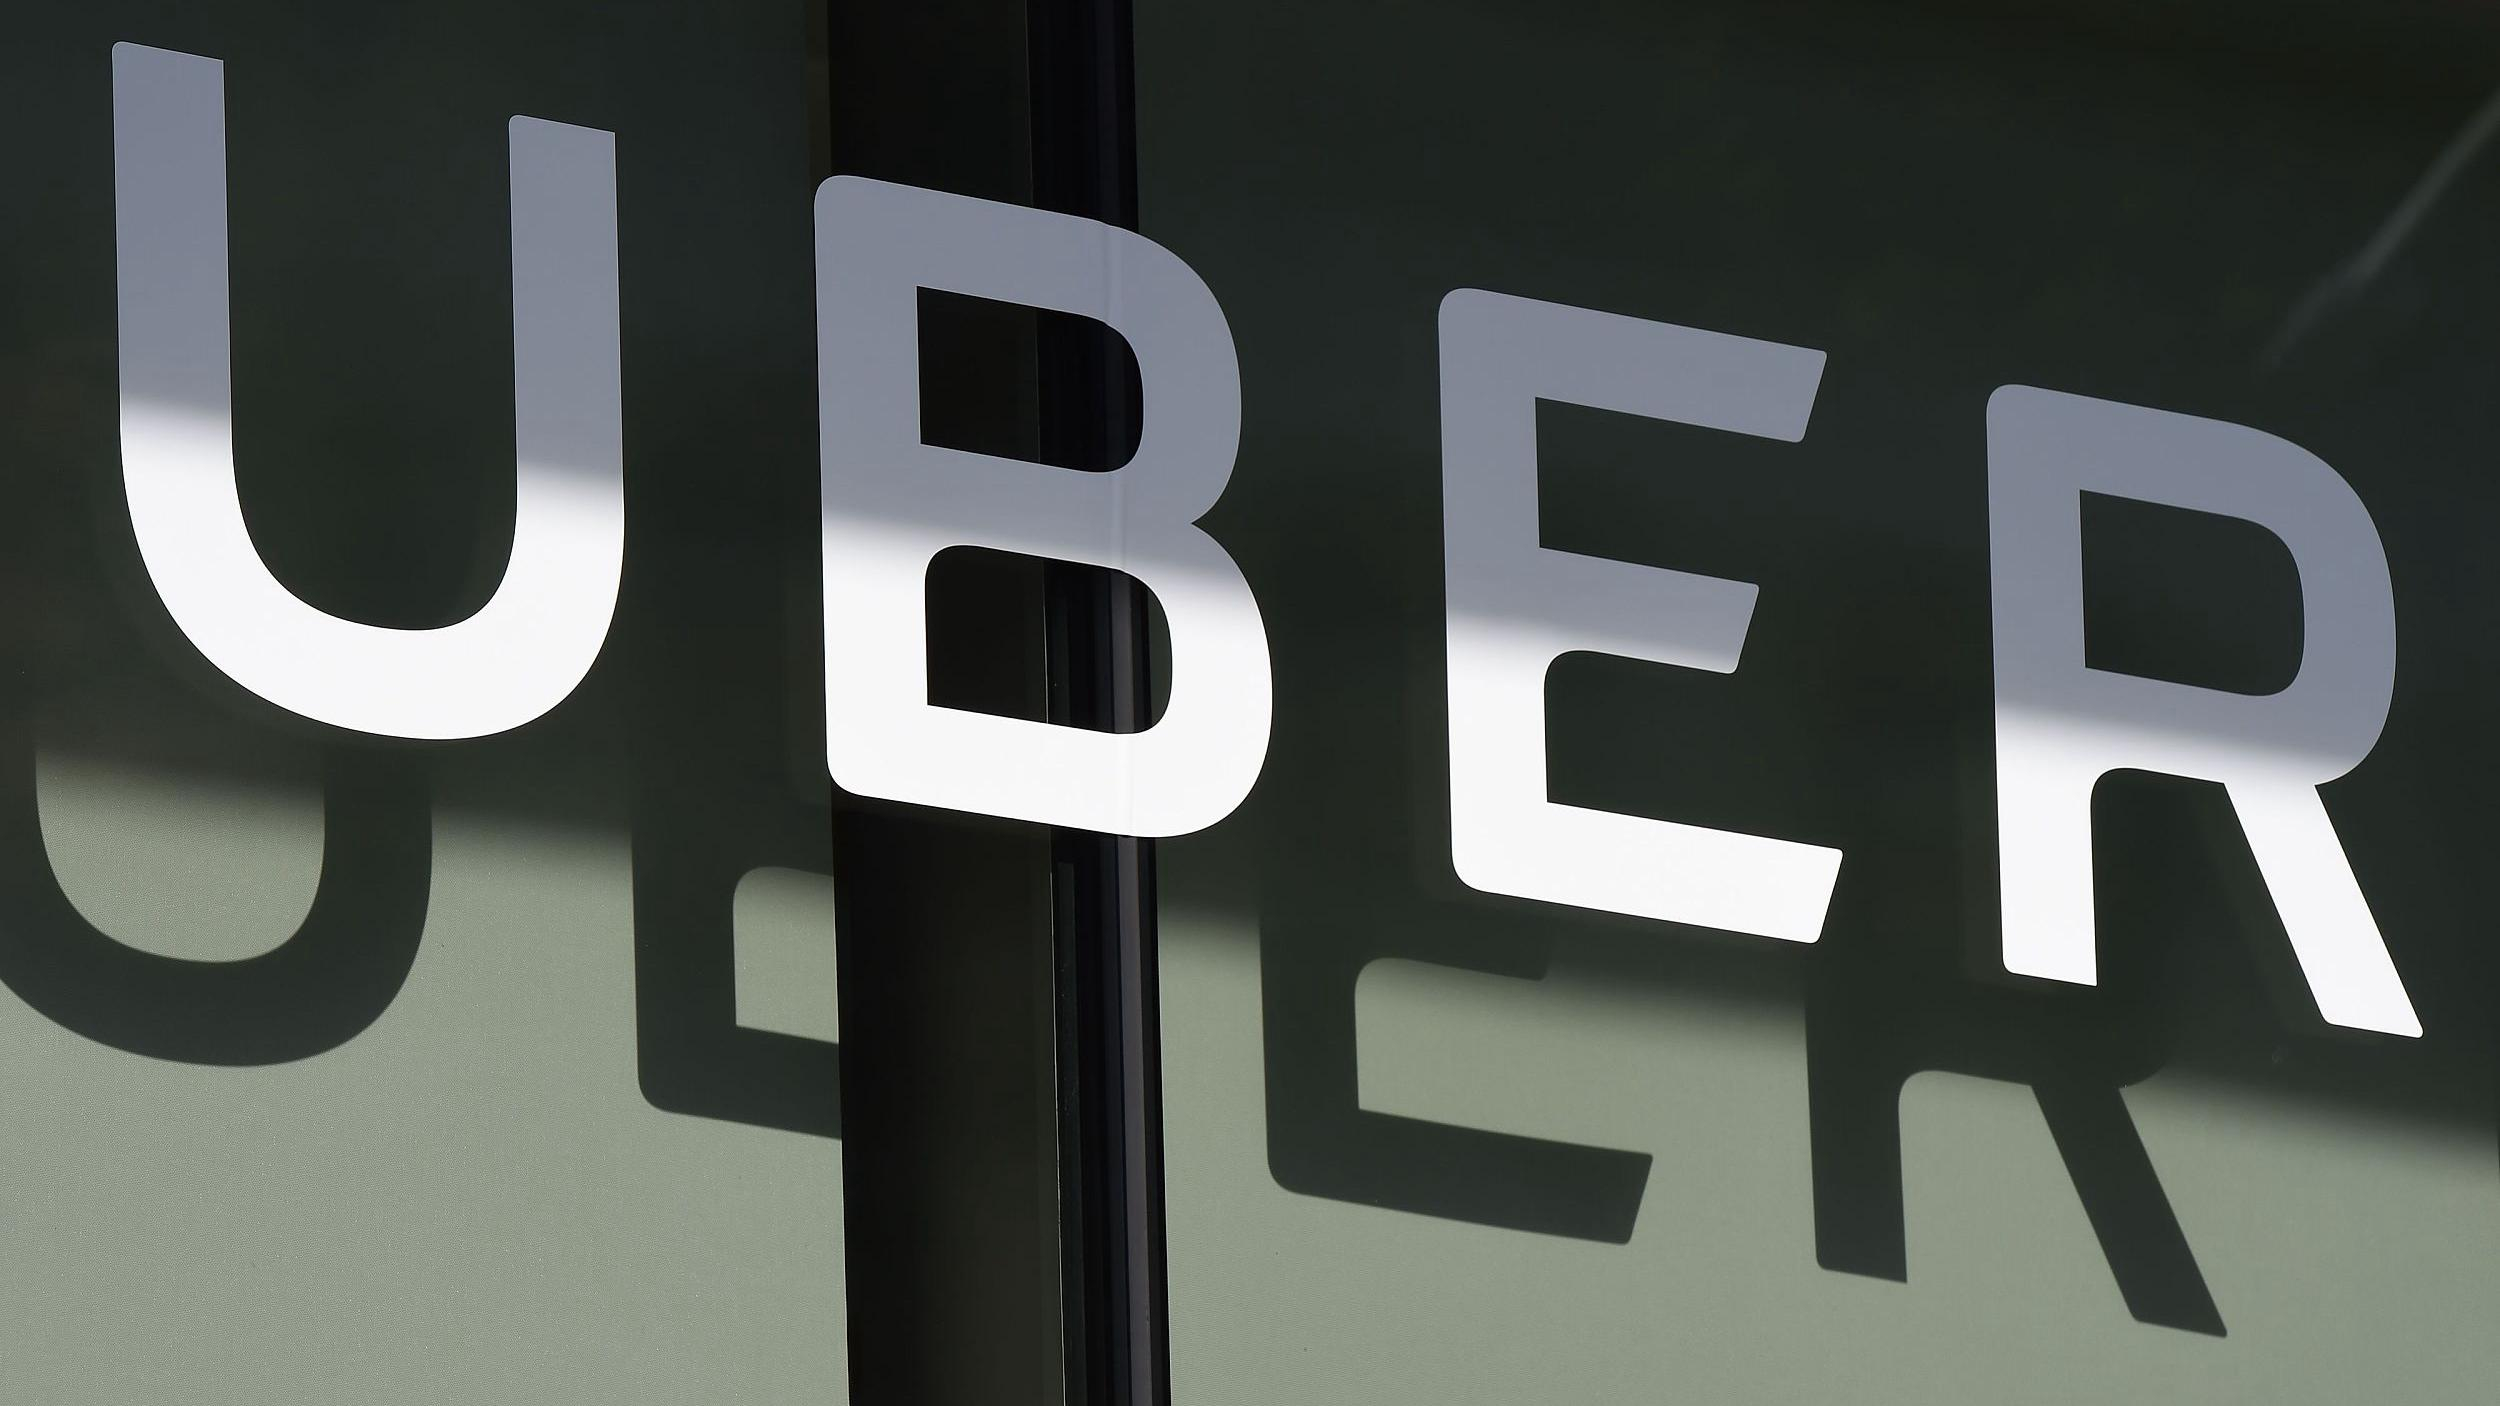 Uber 'on track' for IPO in 2019, no plans to sell tech unit: CEO